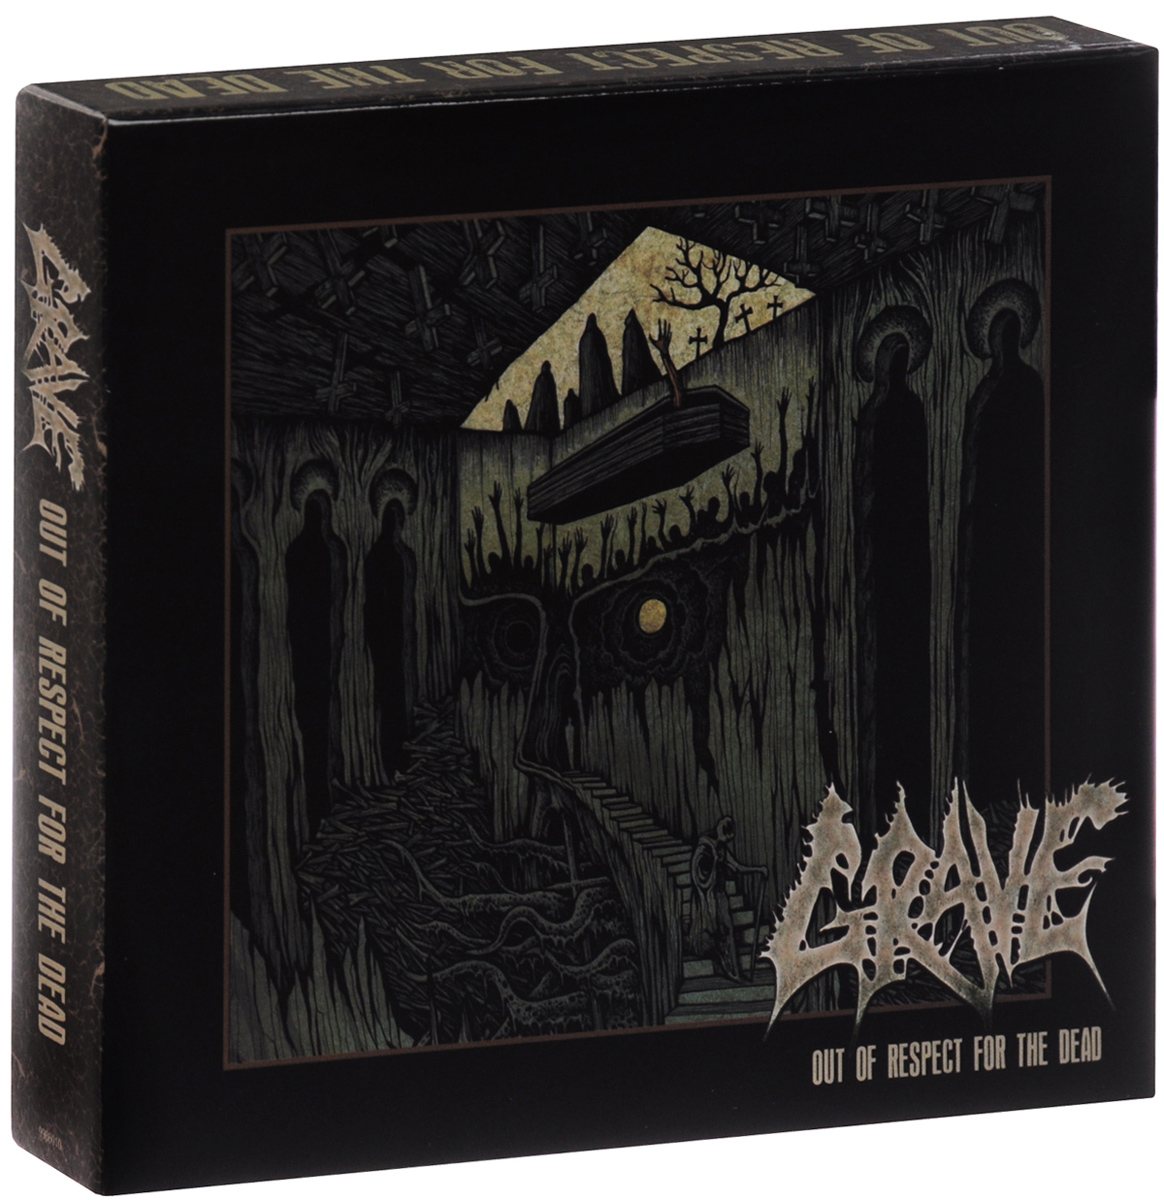 Grave Grave. Out Of Respect For The Dead. Deluxe Box Set (2 CD)